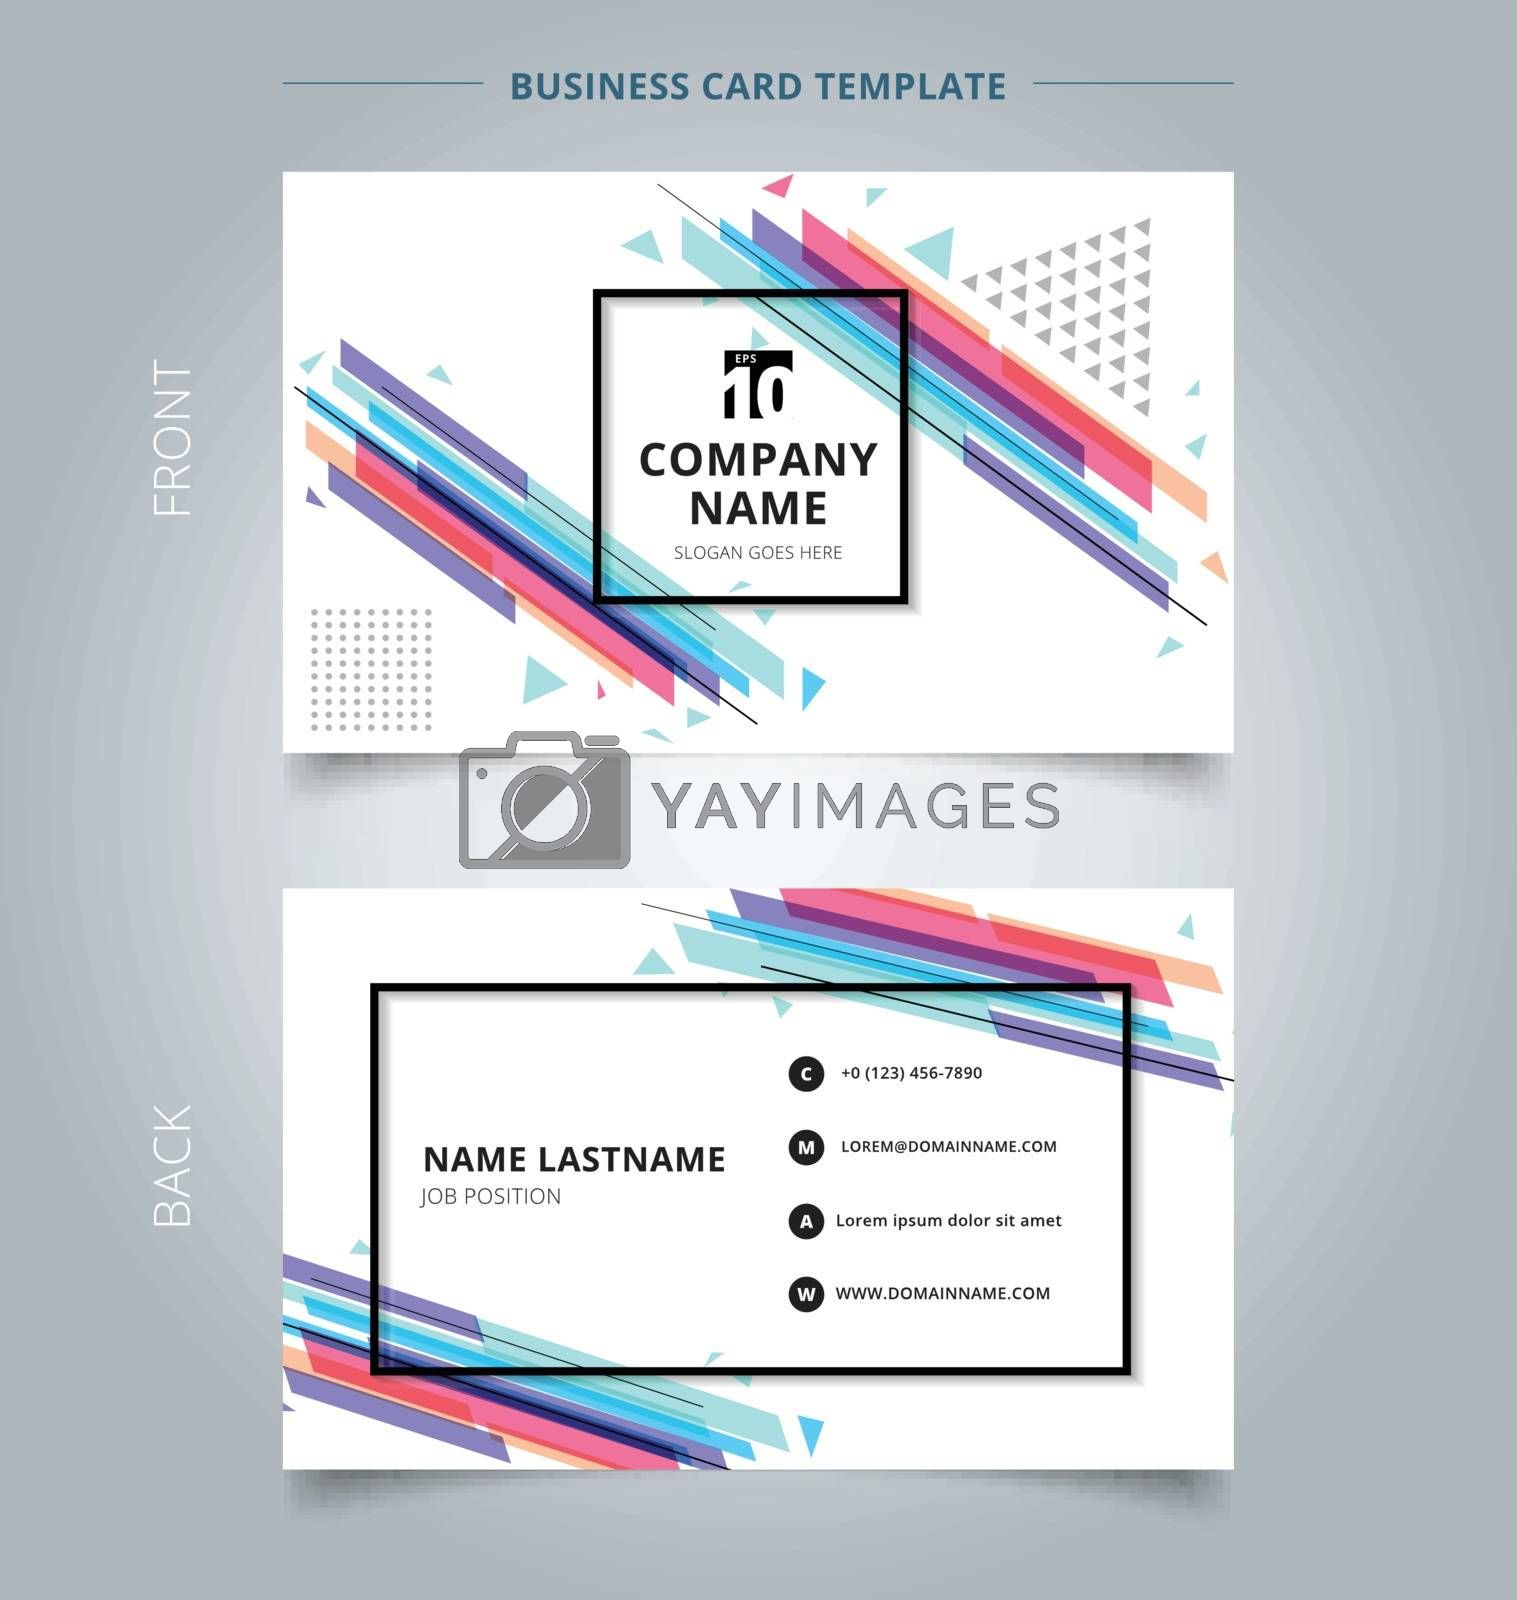 Namecard template colorful geometric pattern style abstract background. Vector illustration